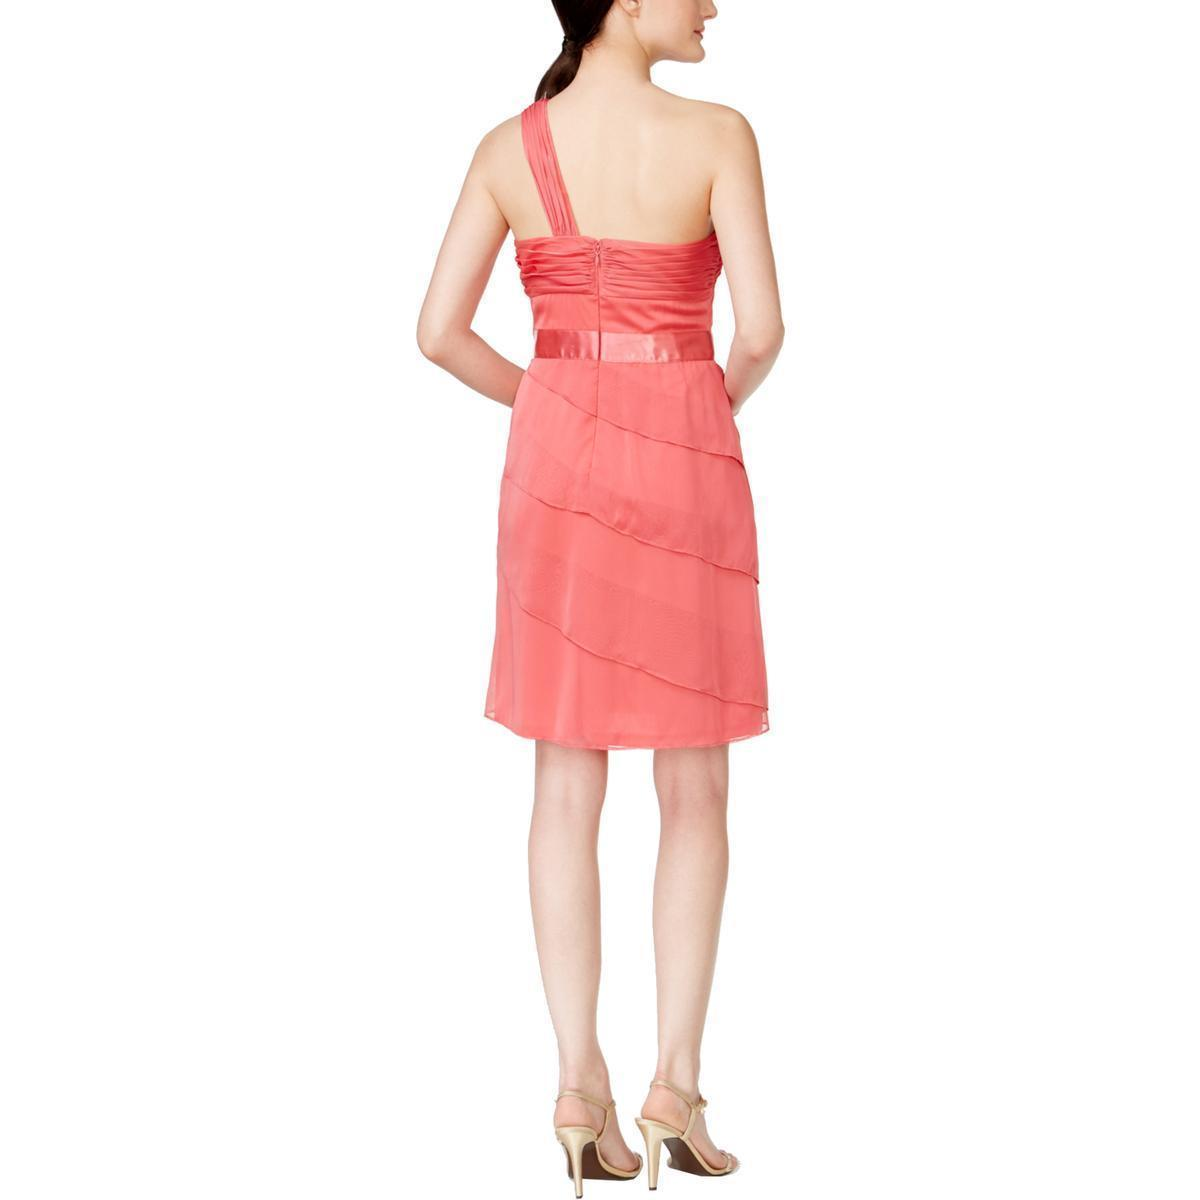 Adrianna Papell Women's Tiered One Shoulder Cocktail Dress Coral $149 Size 16M